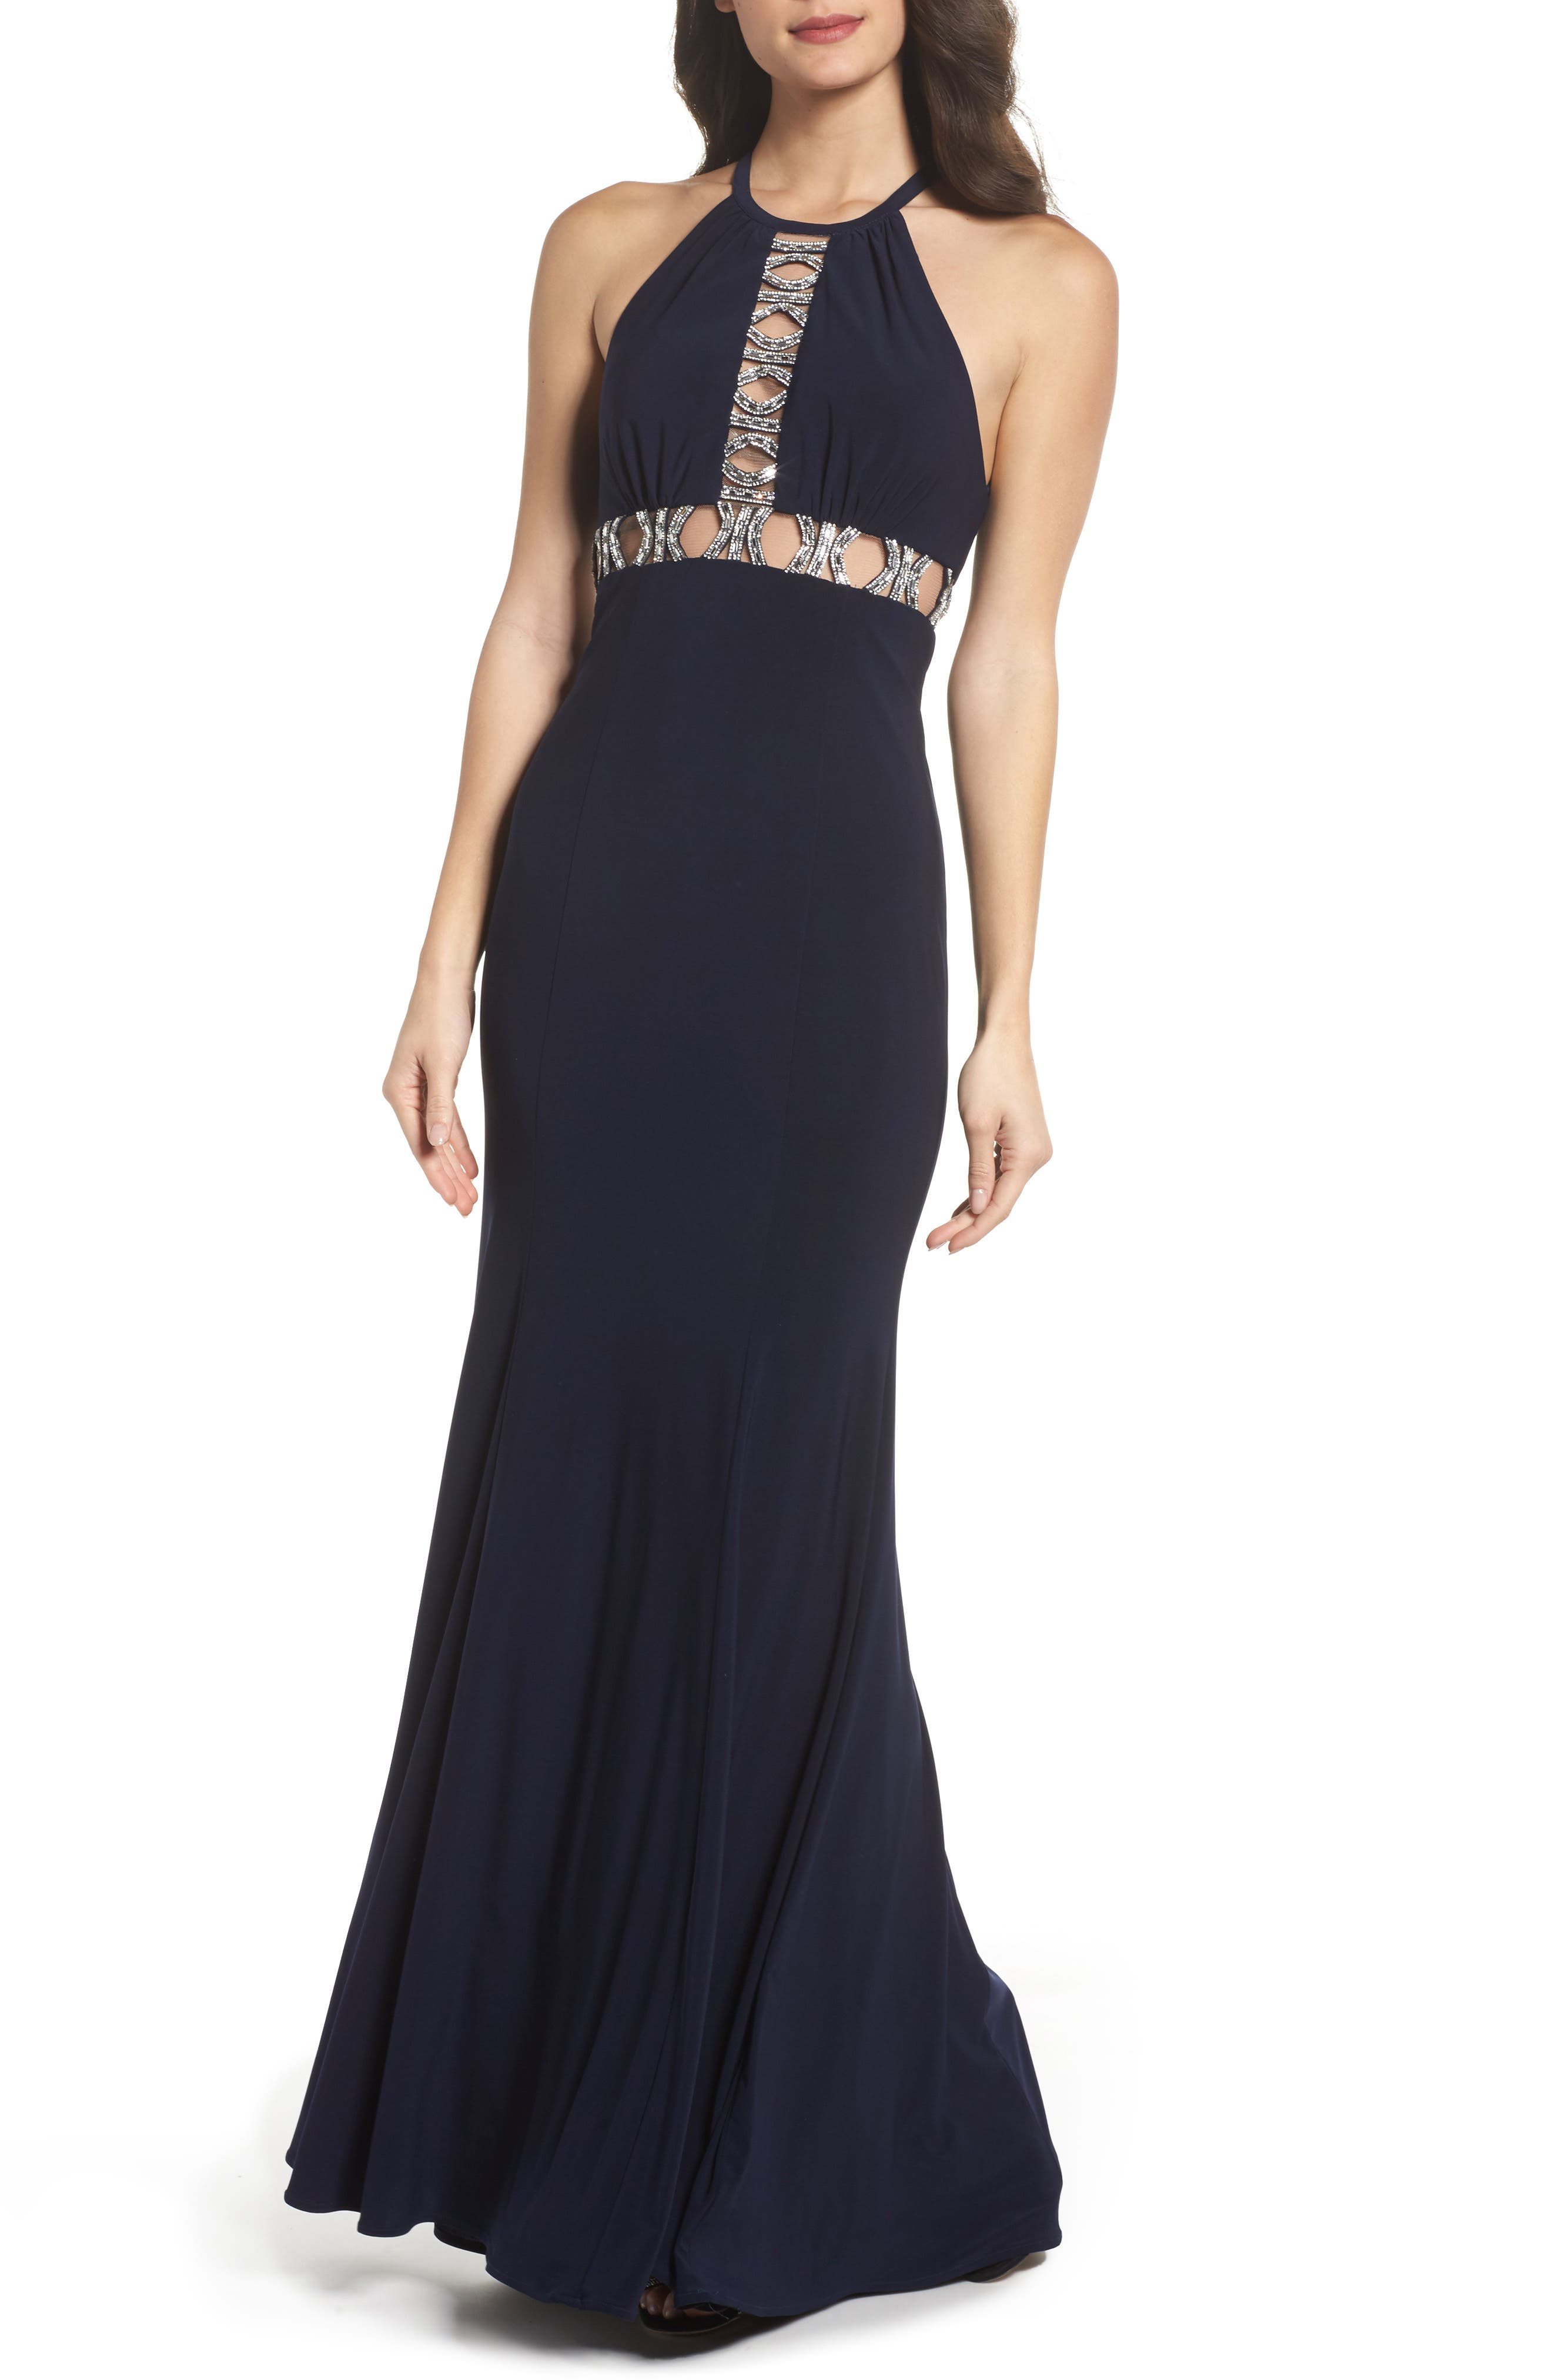 Embellished Halter Mermaid Gown,                             Main thumbnail 1, color,                             Navy/ Silver